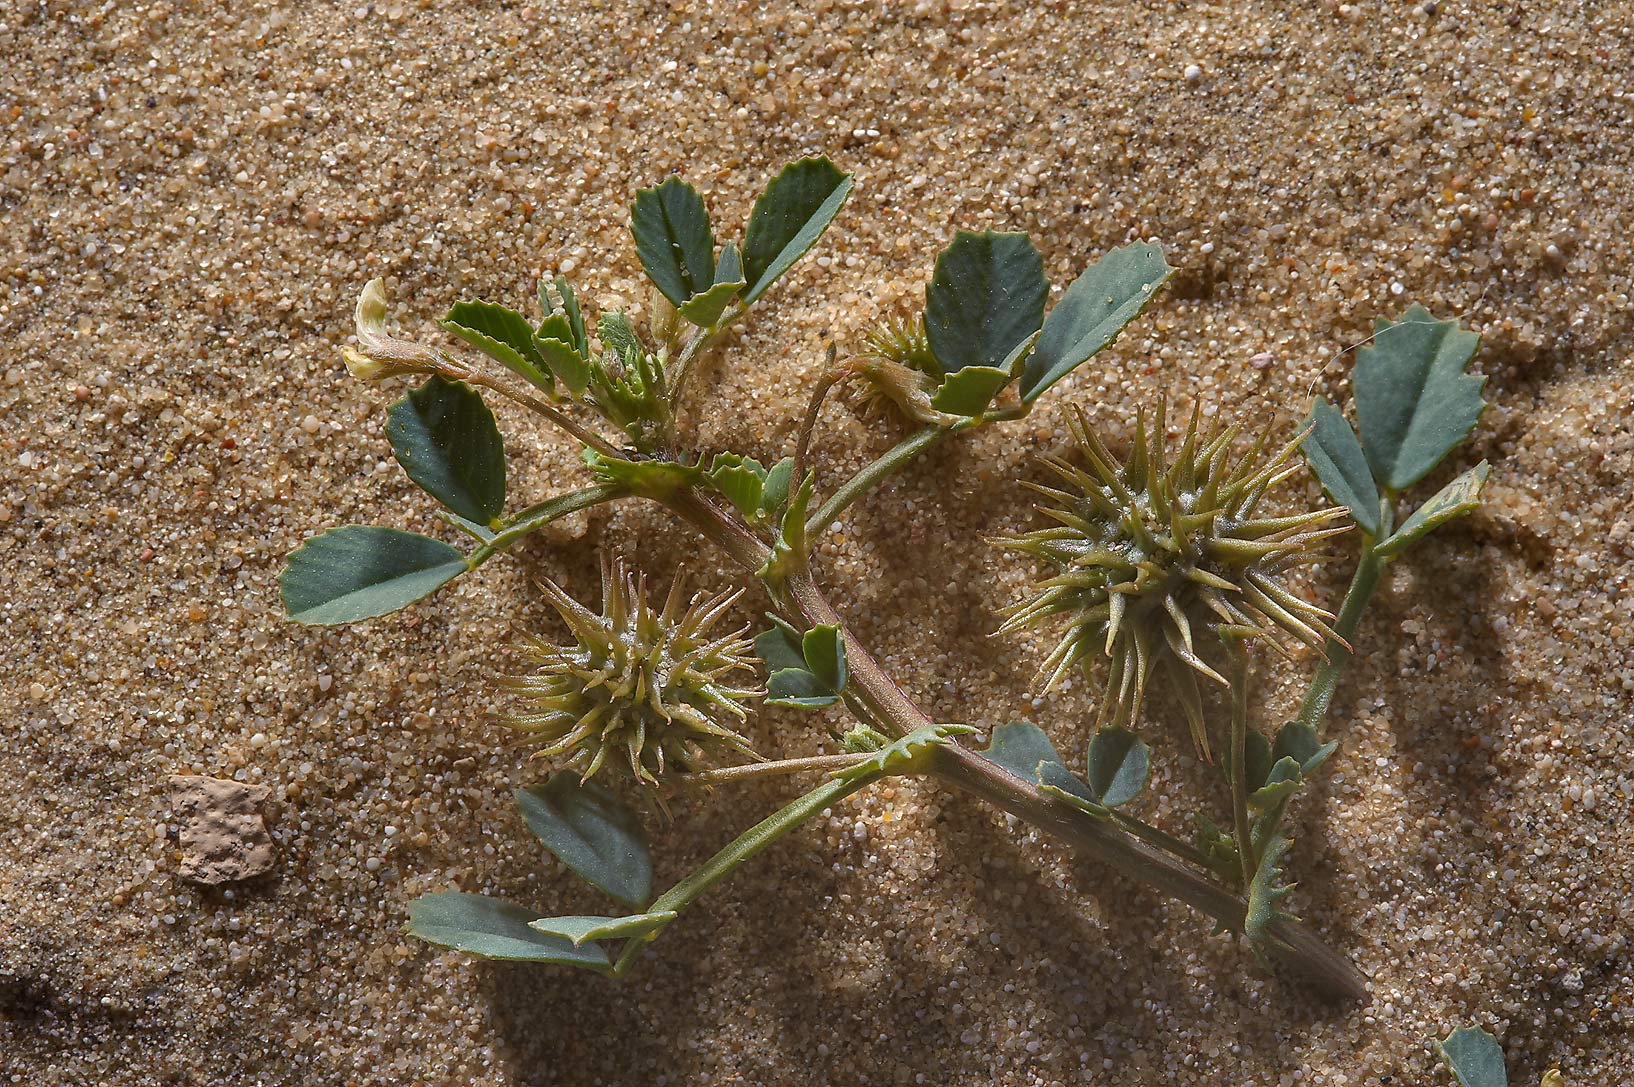 Desert plant Medicago laciniata (Medicago...in sand near Trainah in southern Qatar